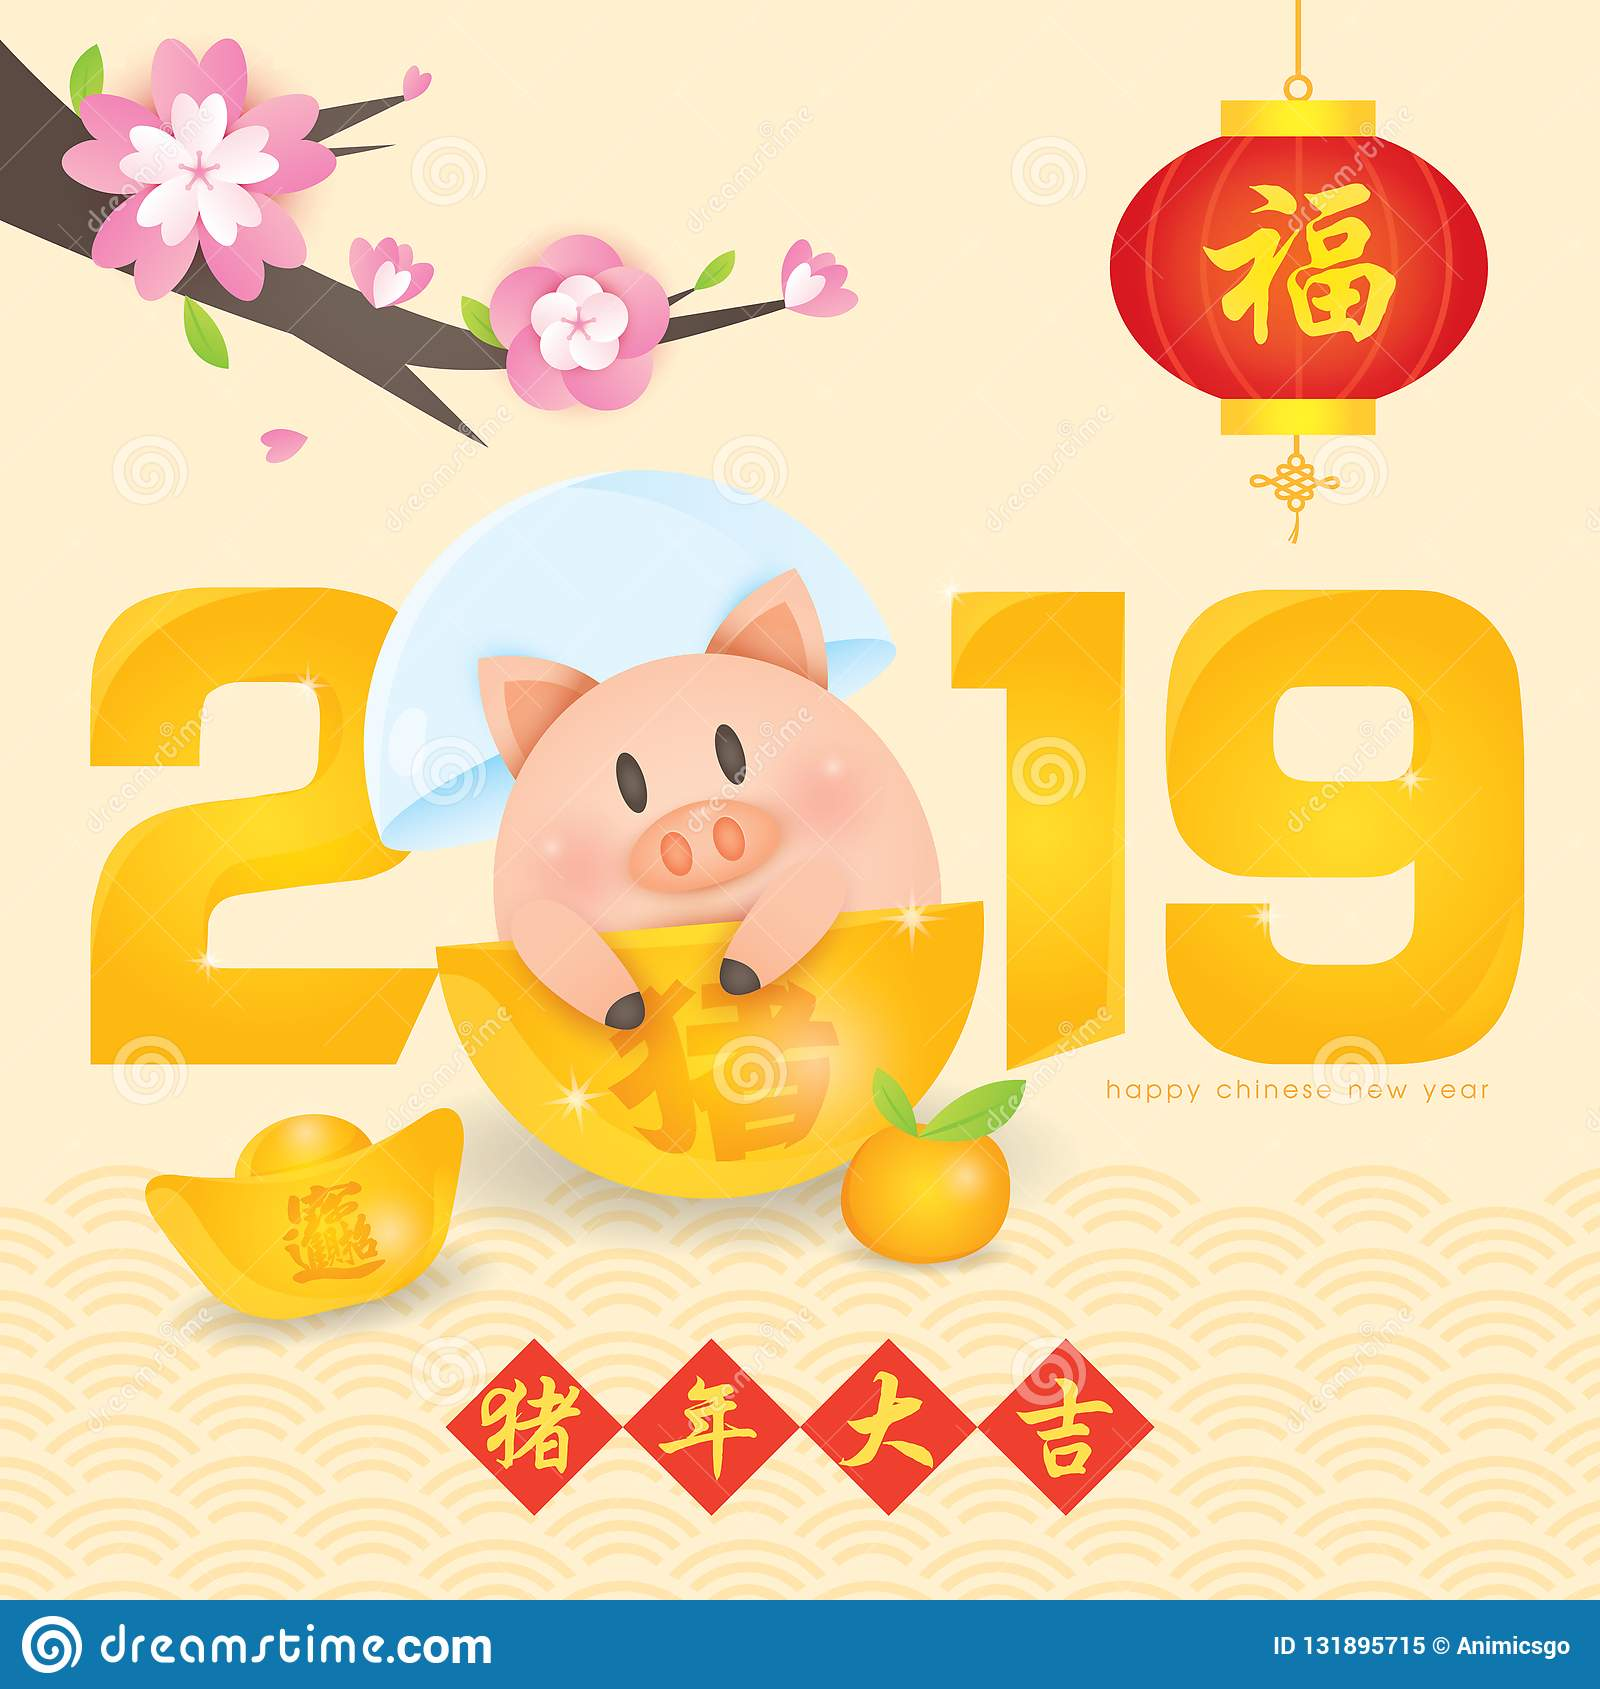 2019 Chinese New Year, Year of Pig Vector with cute piggy with gold ingots, tangerine, lantern couplet and blossom tree.